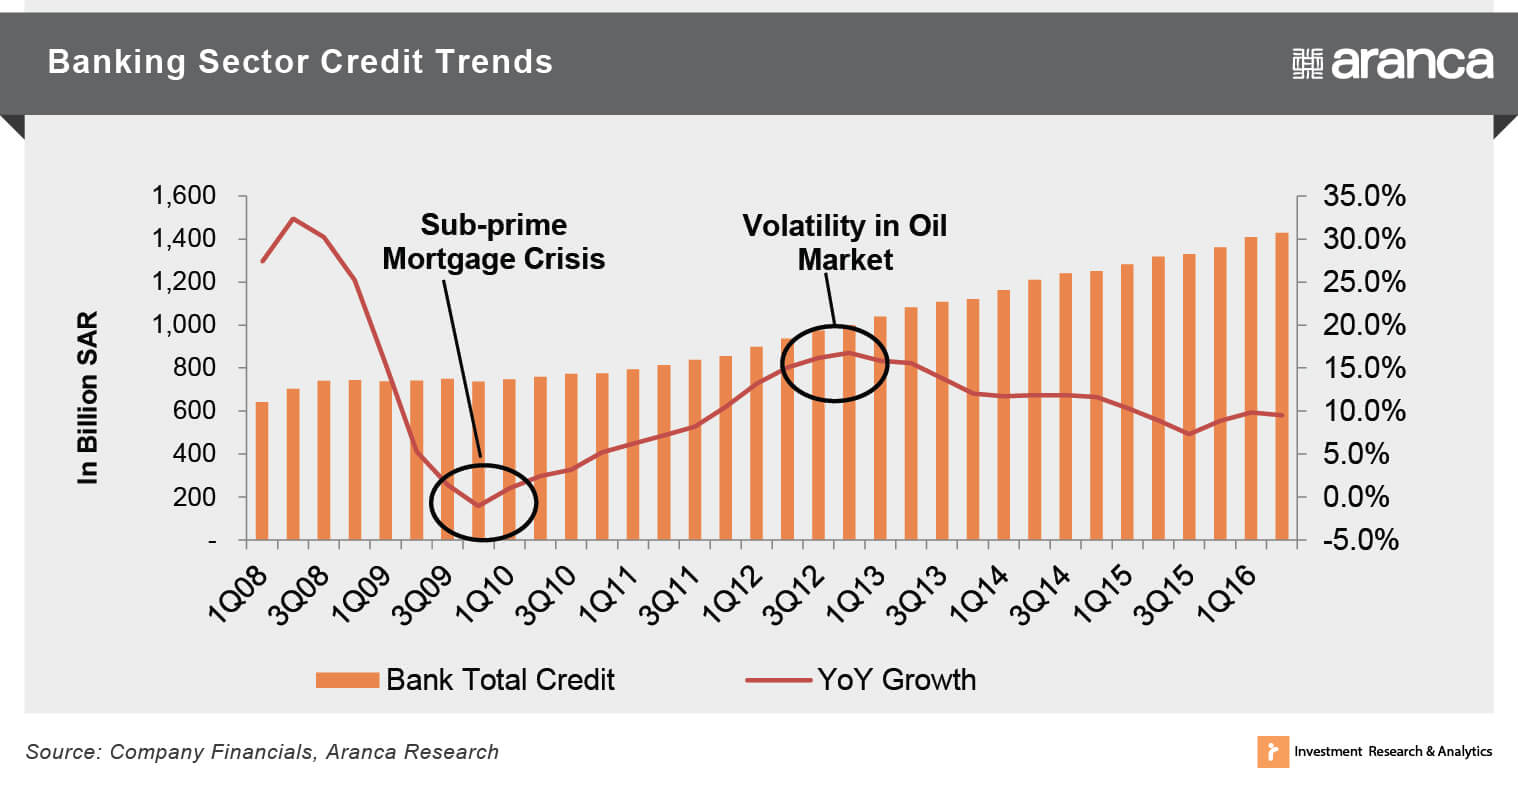 Banking Sector Credit Trends